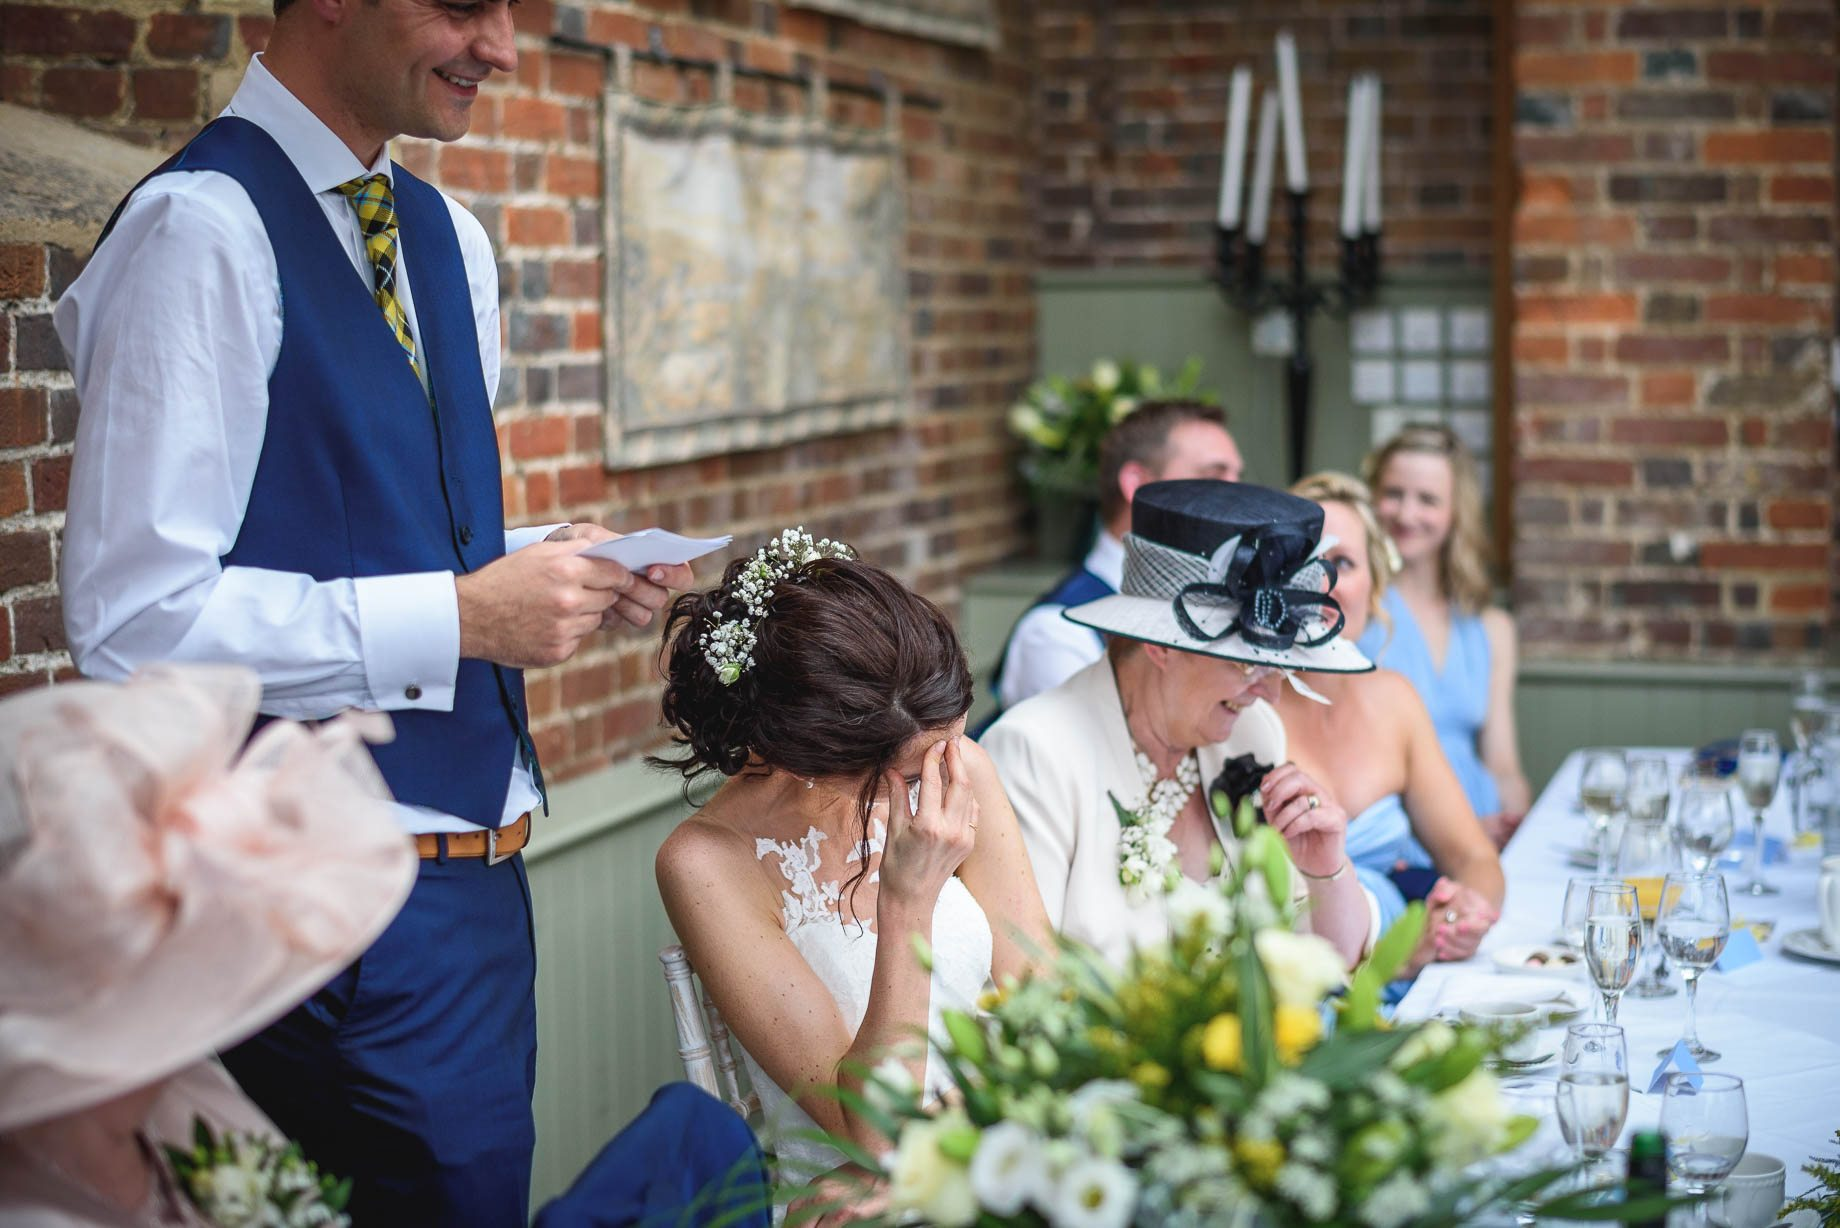 Hertfordshire wedding photography - Sarah and Stephen by Guy Collier Photography (126 of 161)